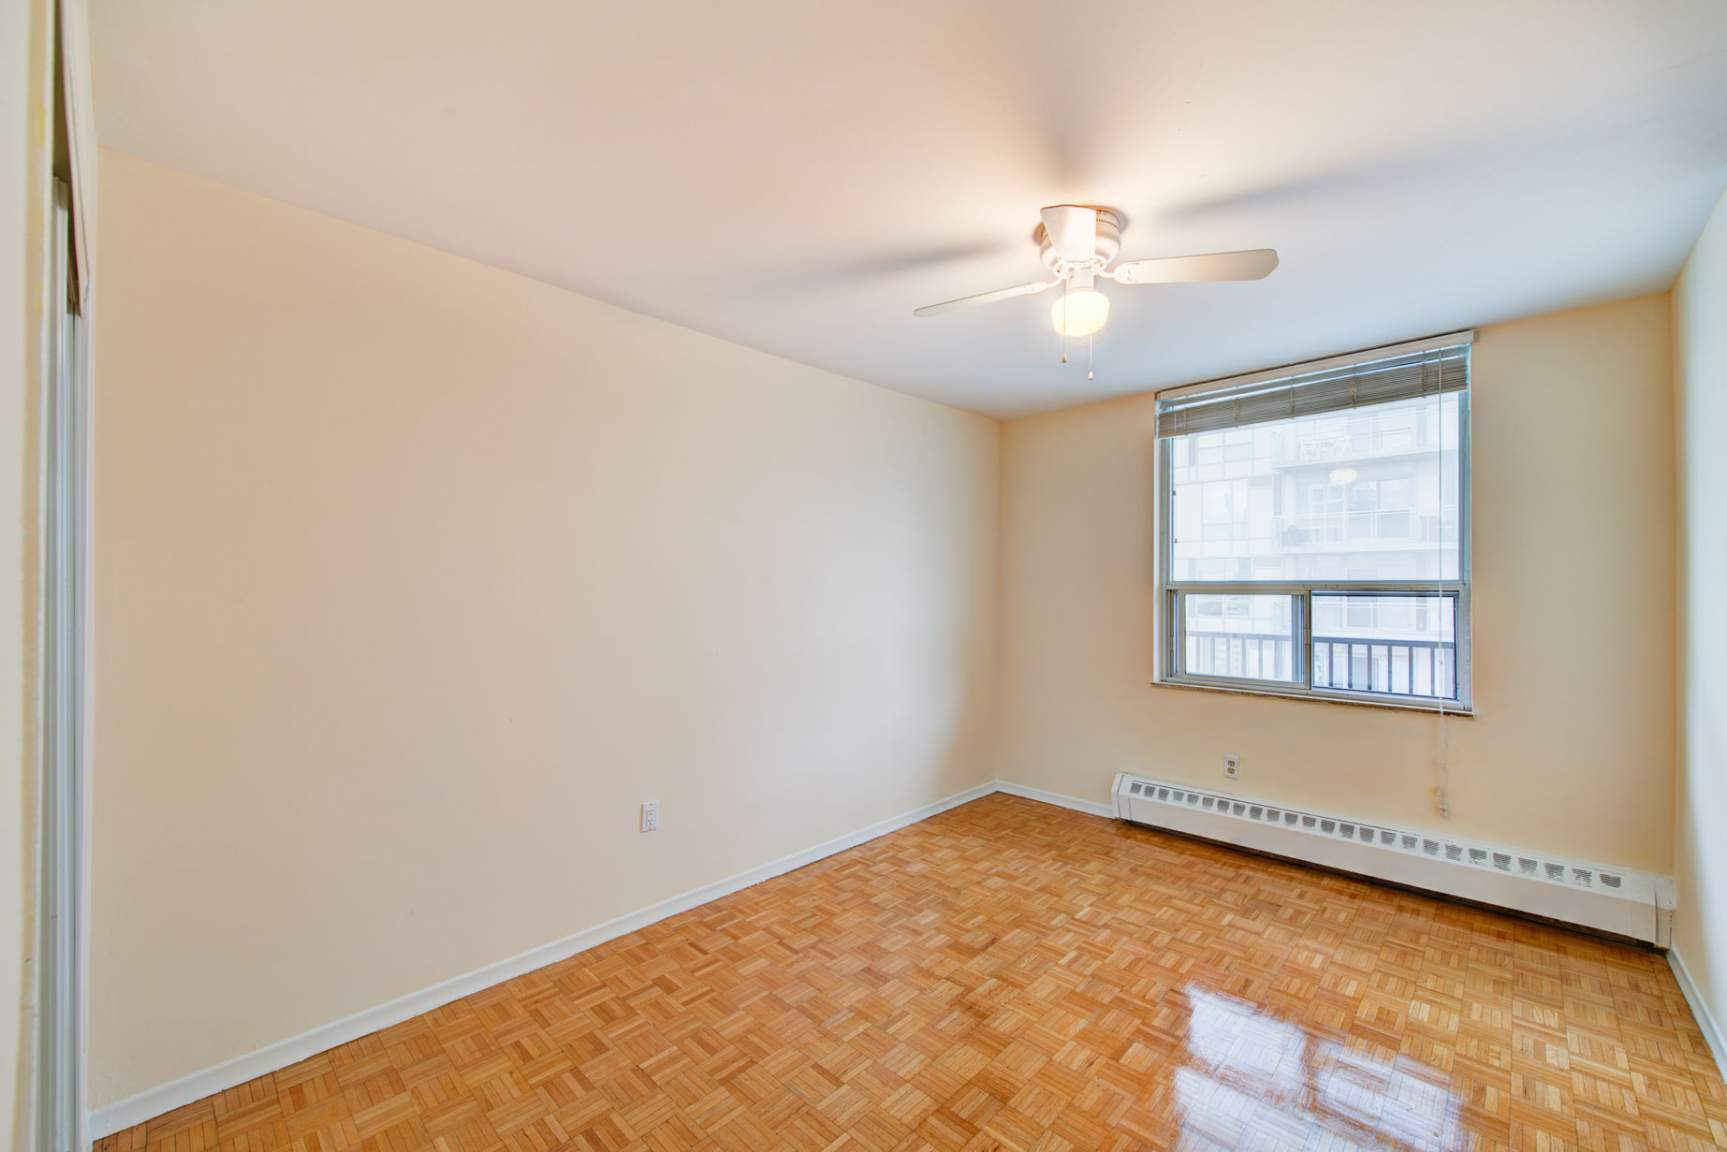 Studio / Bachelor Apartments for rent in Toronto at Redpath Tower - Photo 14 - RentersPages – L400652